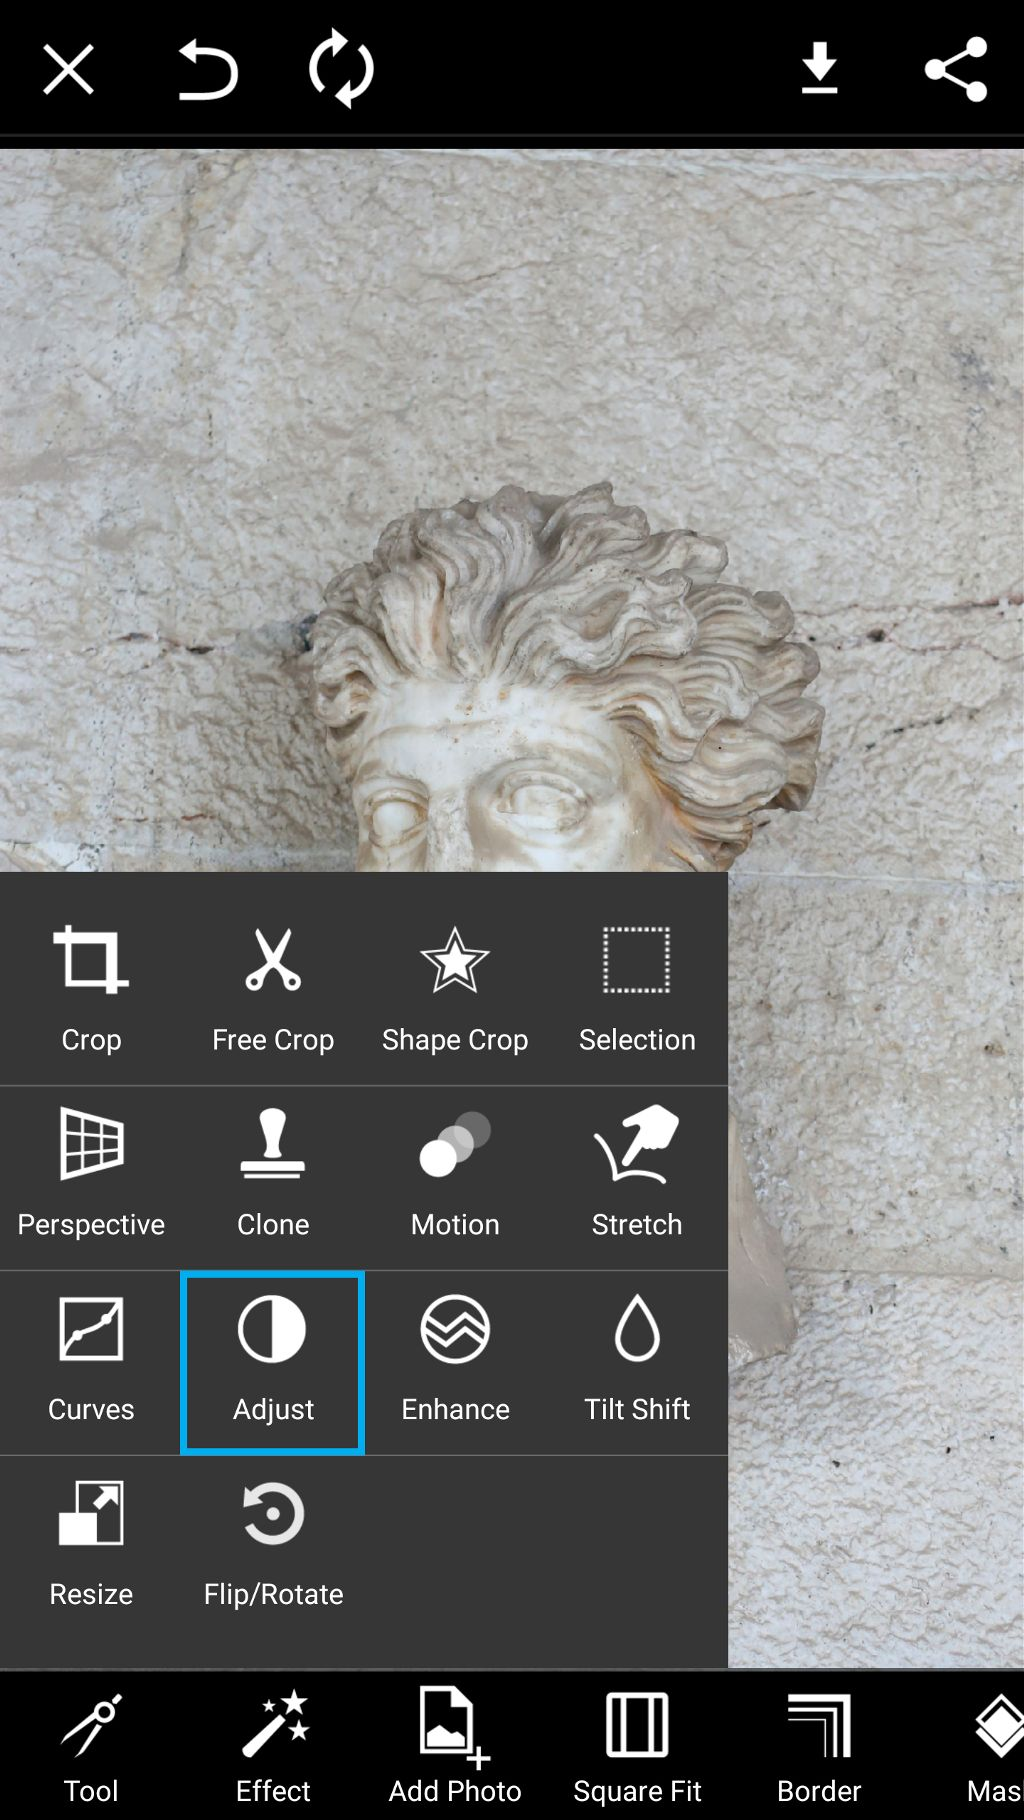 Select adjust from the tools